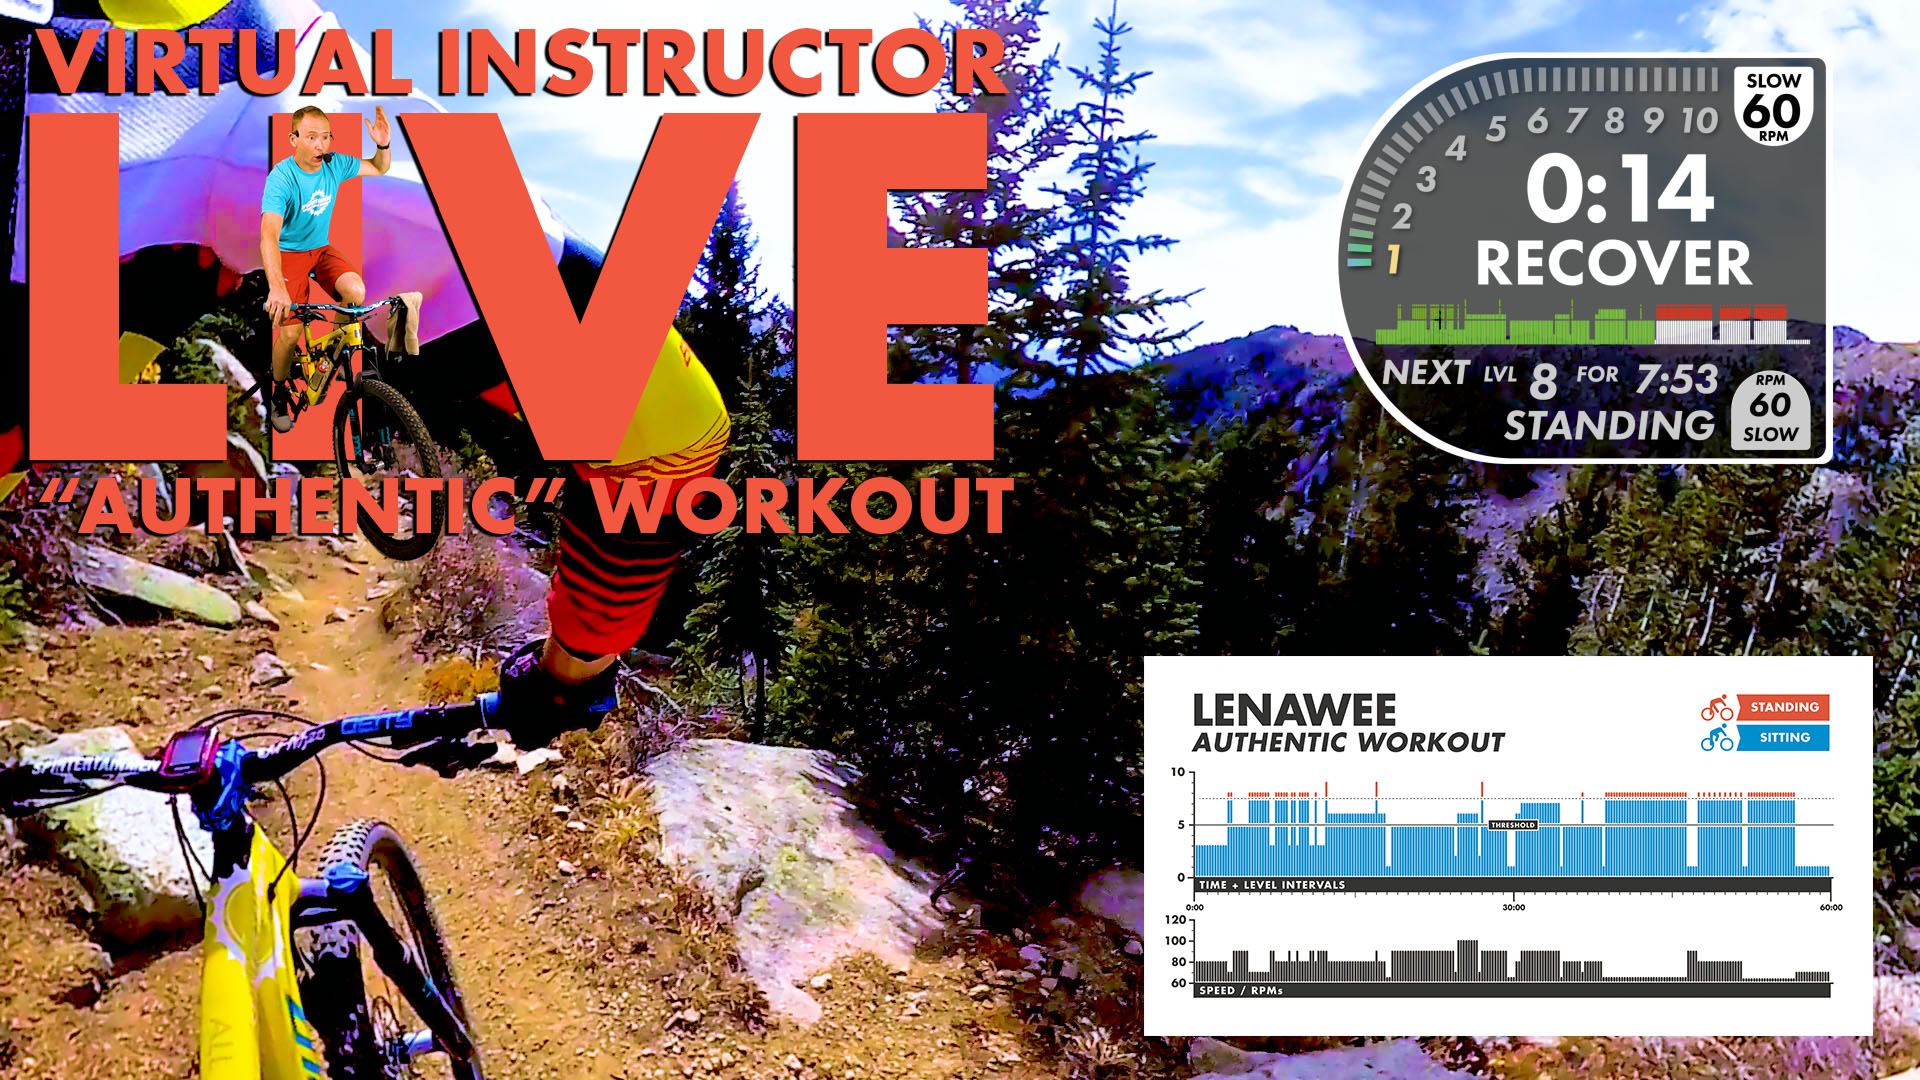 Lenawee FPV AUTHENTIC Virtual Instructor.jpg